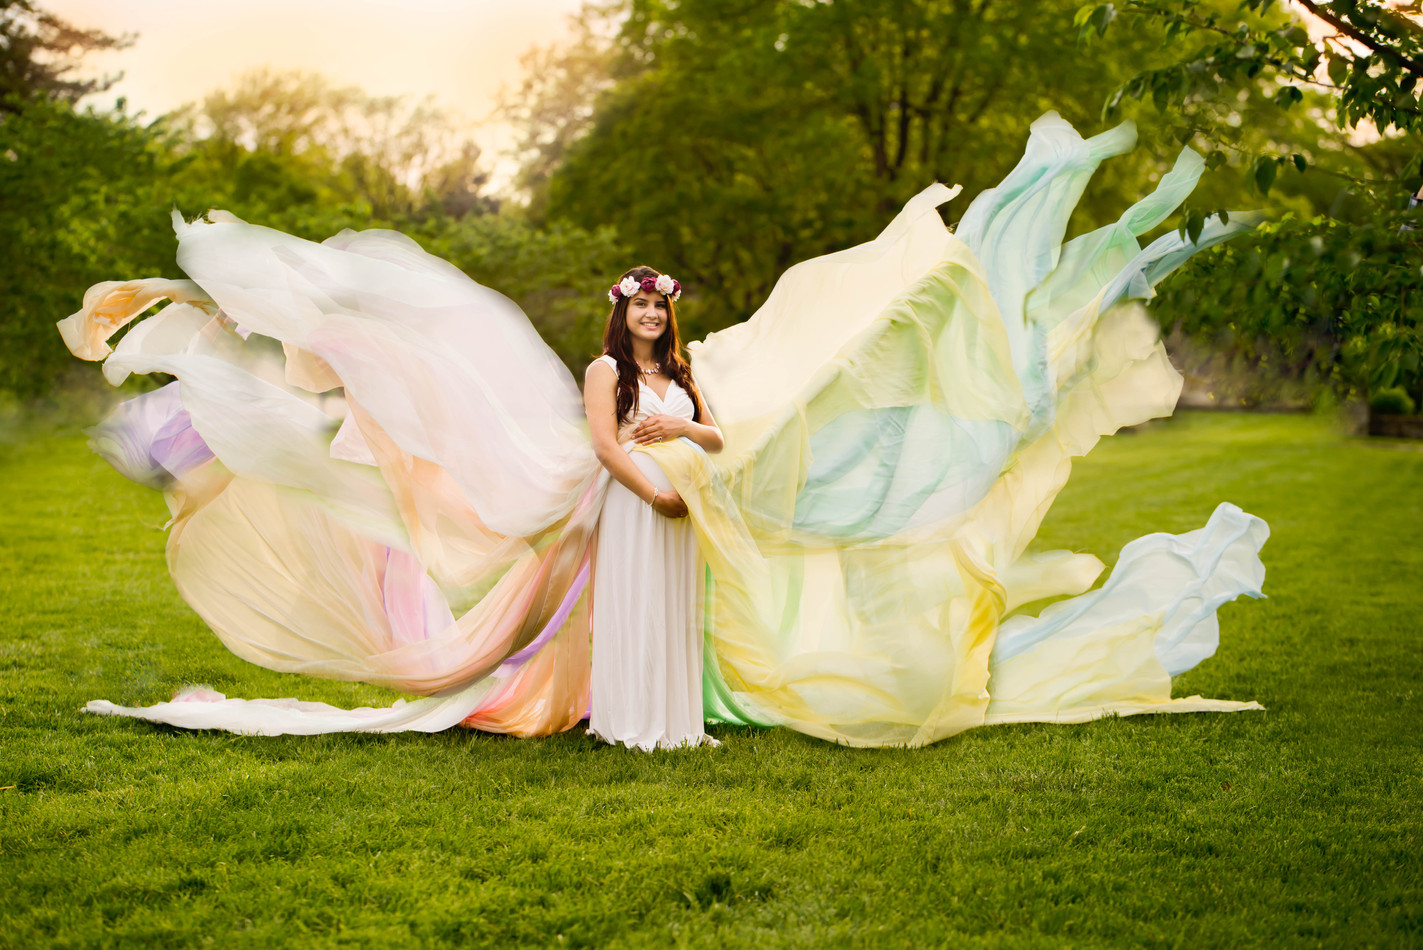 Rainbow maternity gown flying in the air